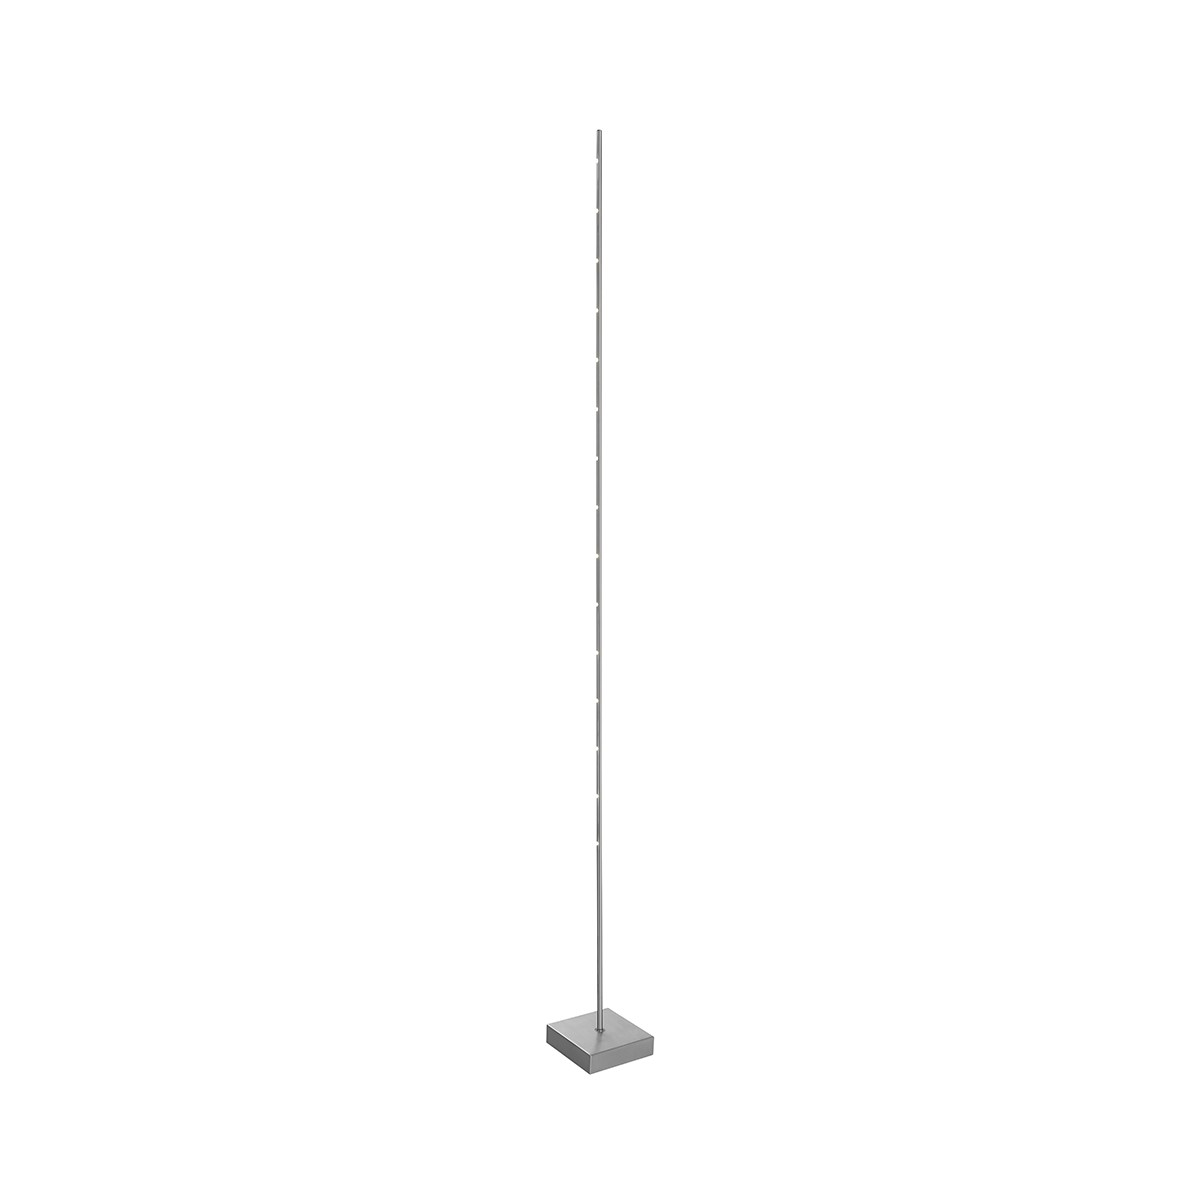 Sompex Pin LED Stehleuchte, Metall